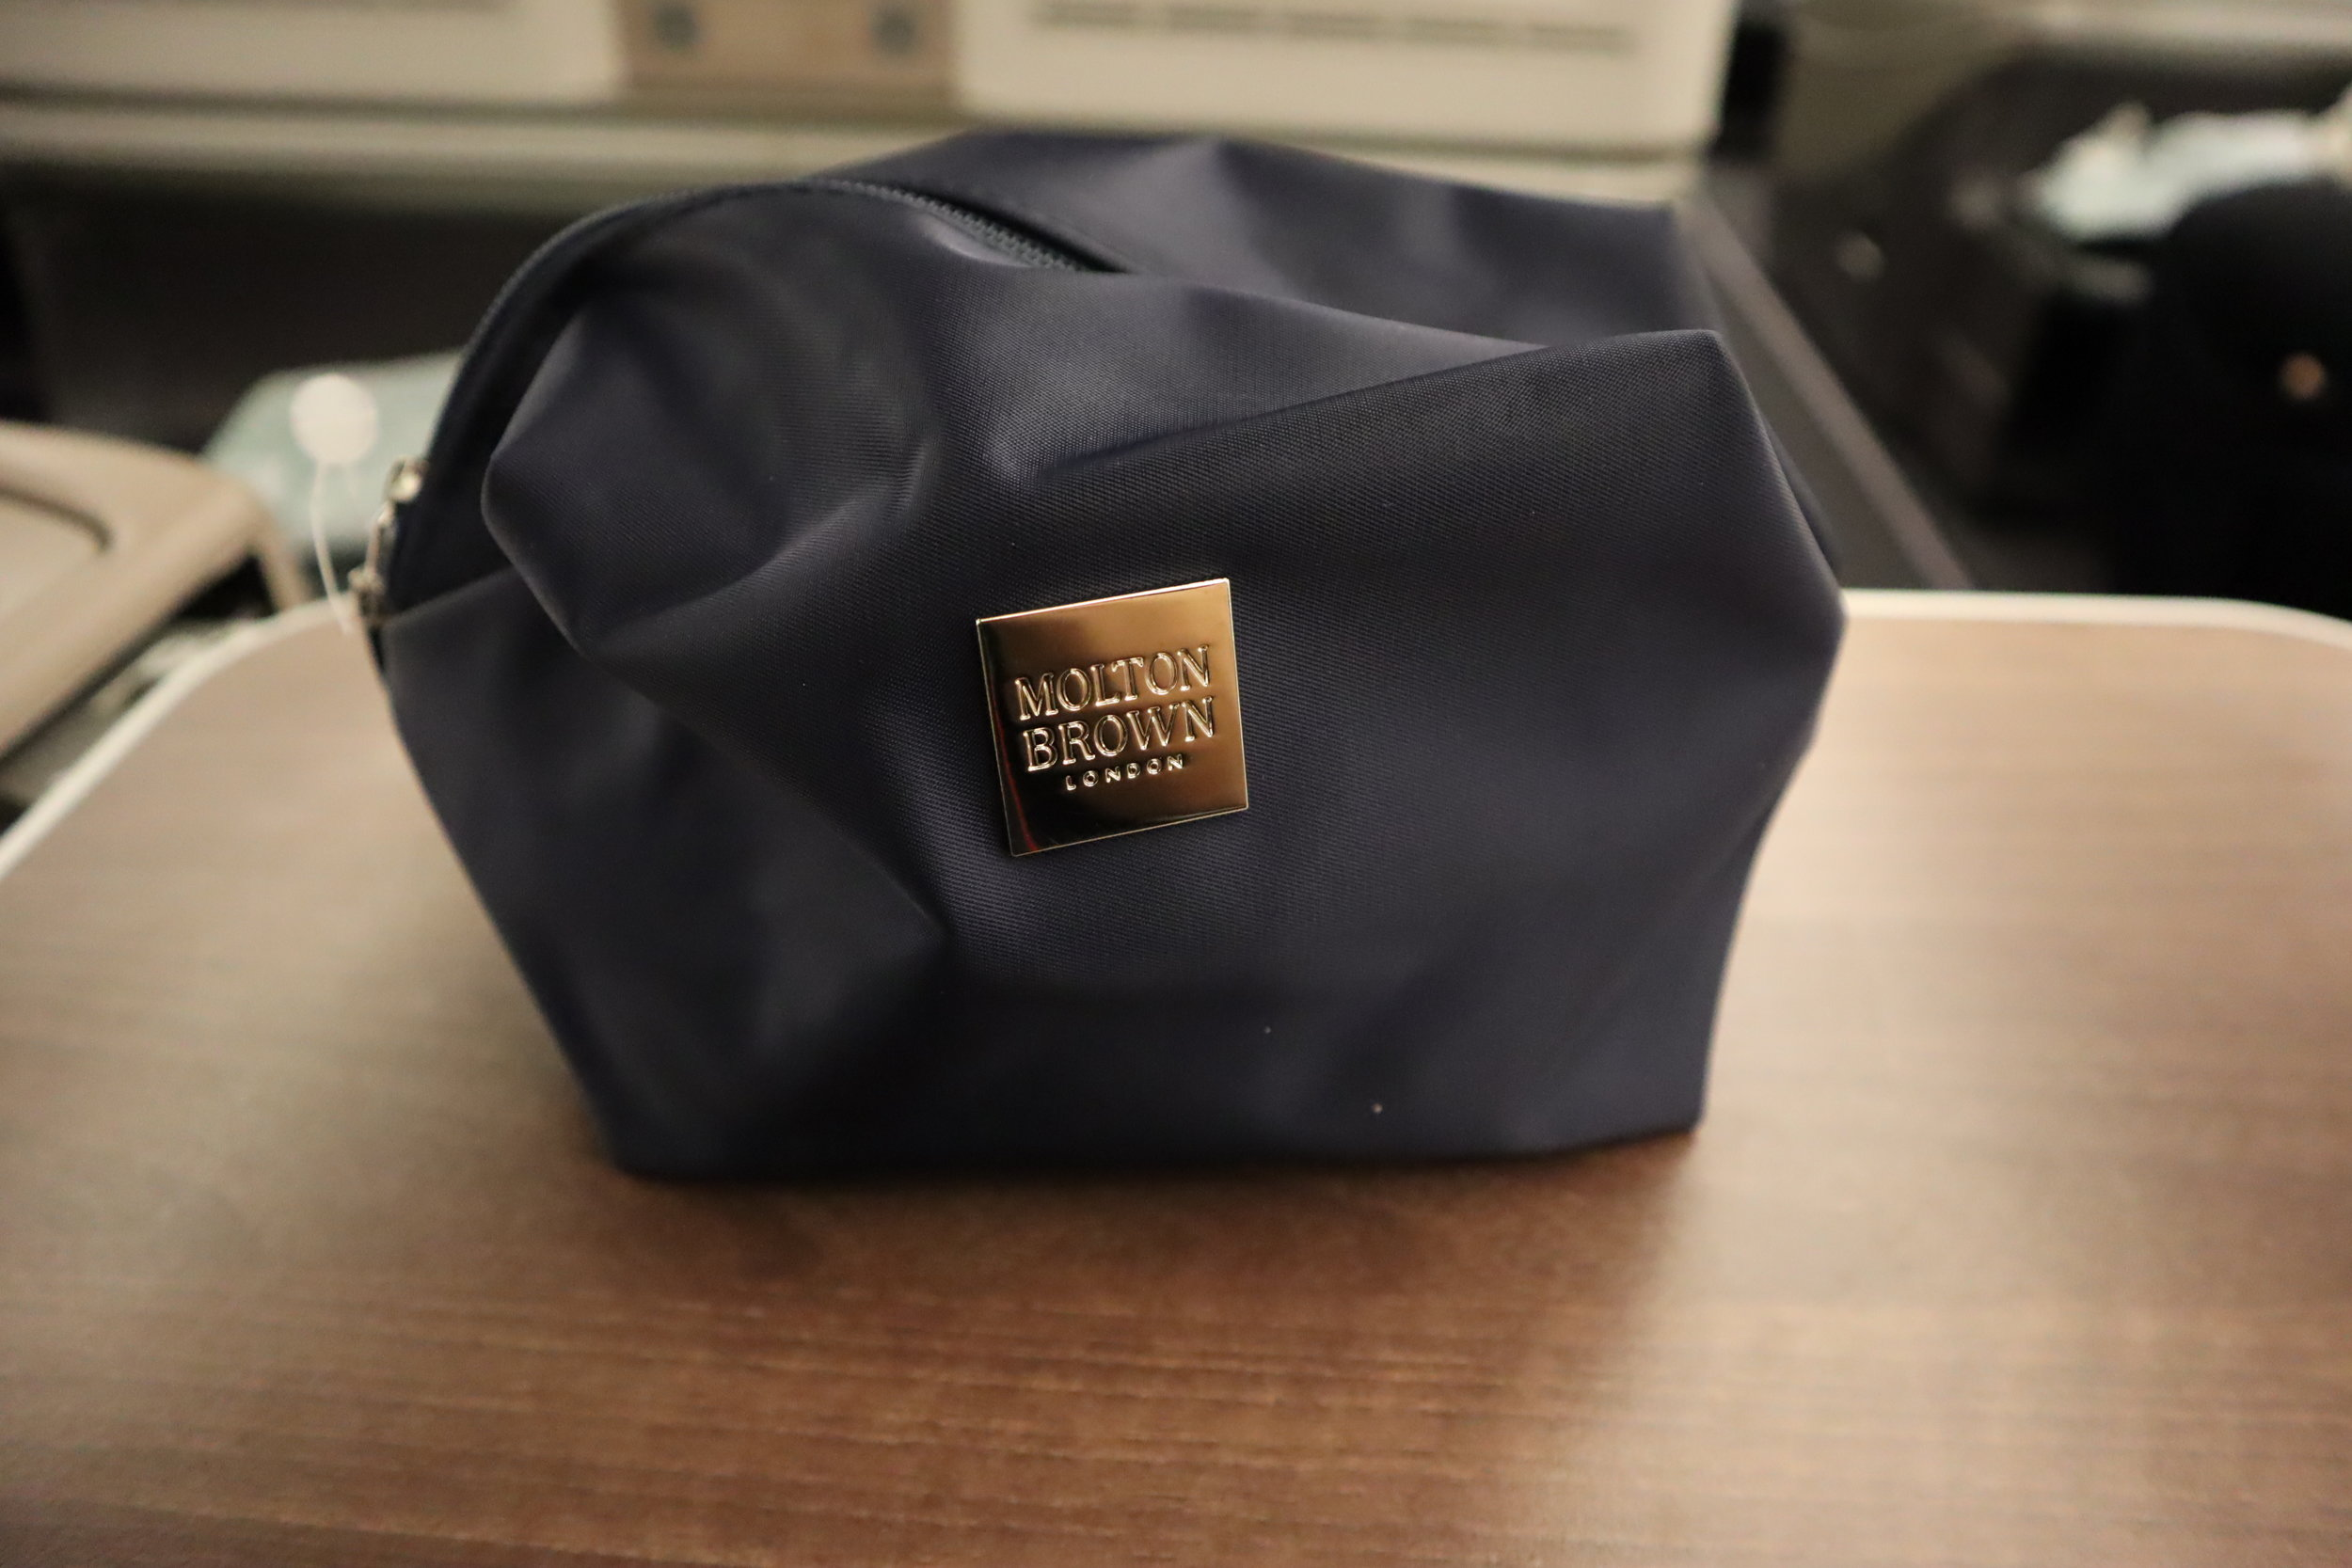 Turkish Airlines A330 business class – Amenity kit